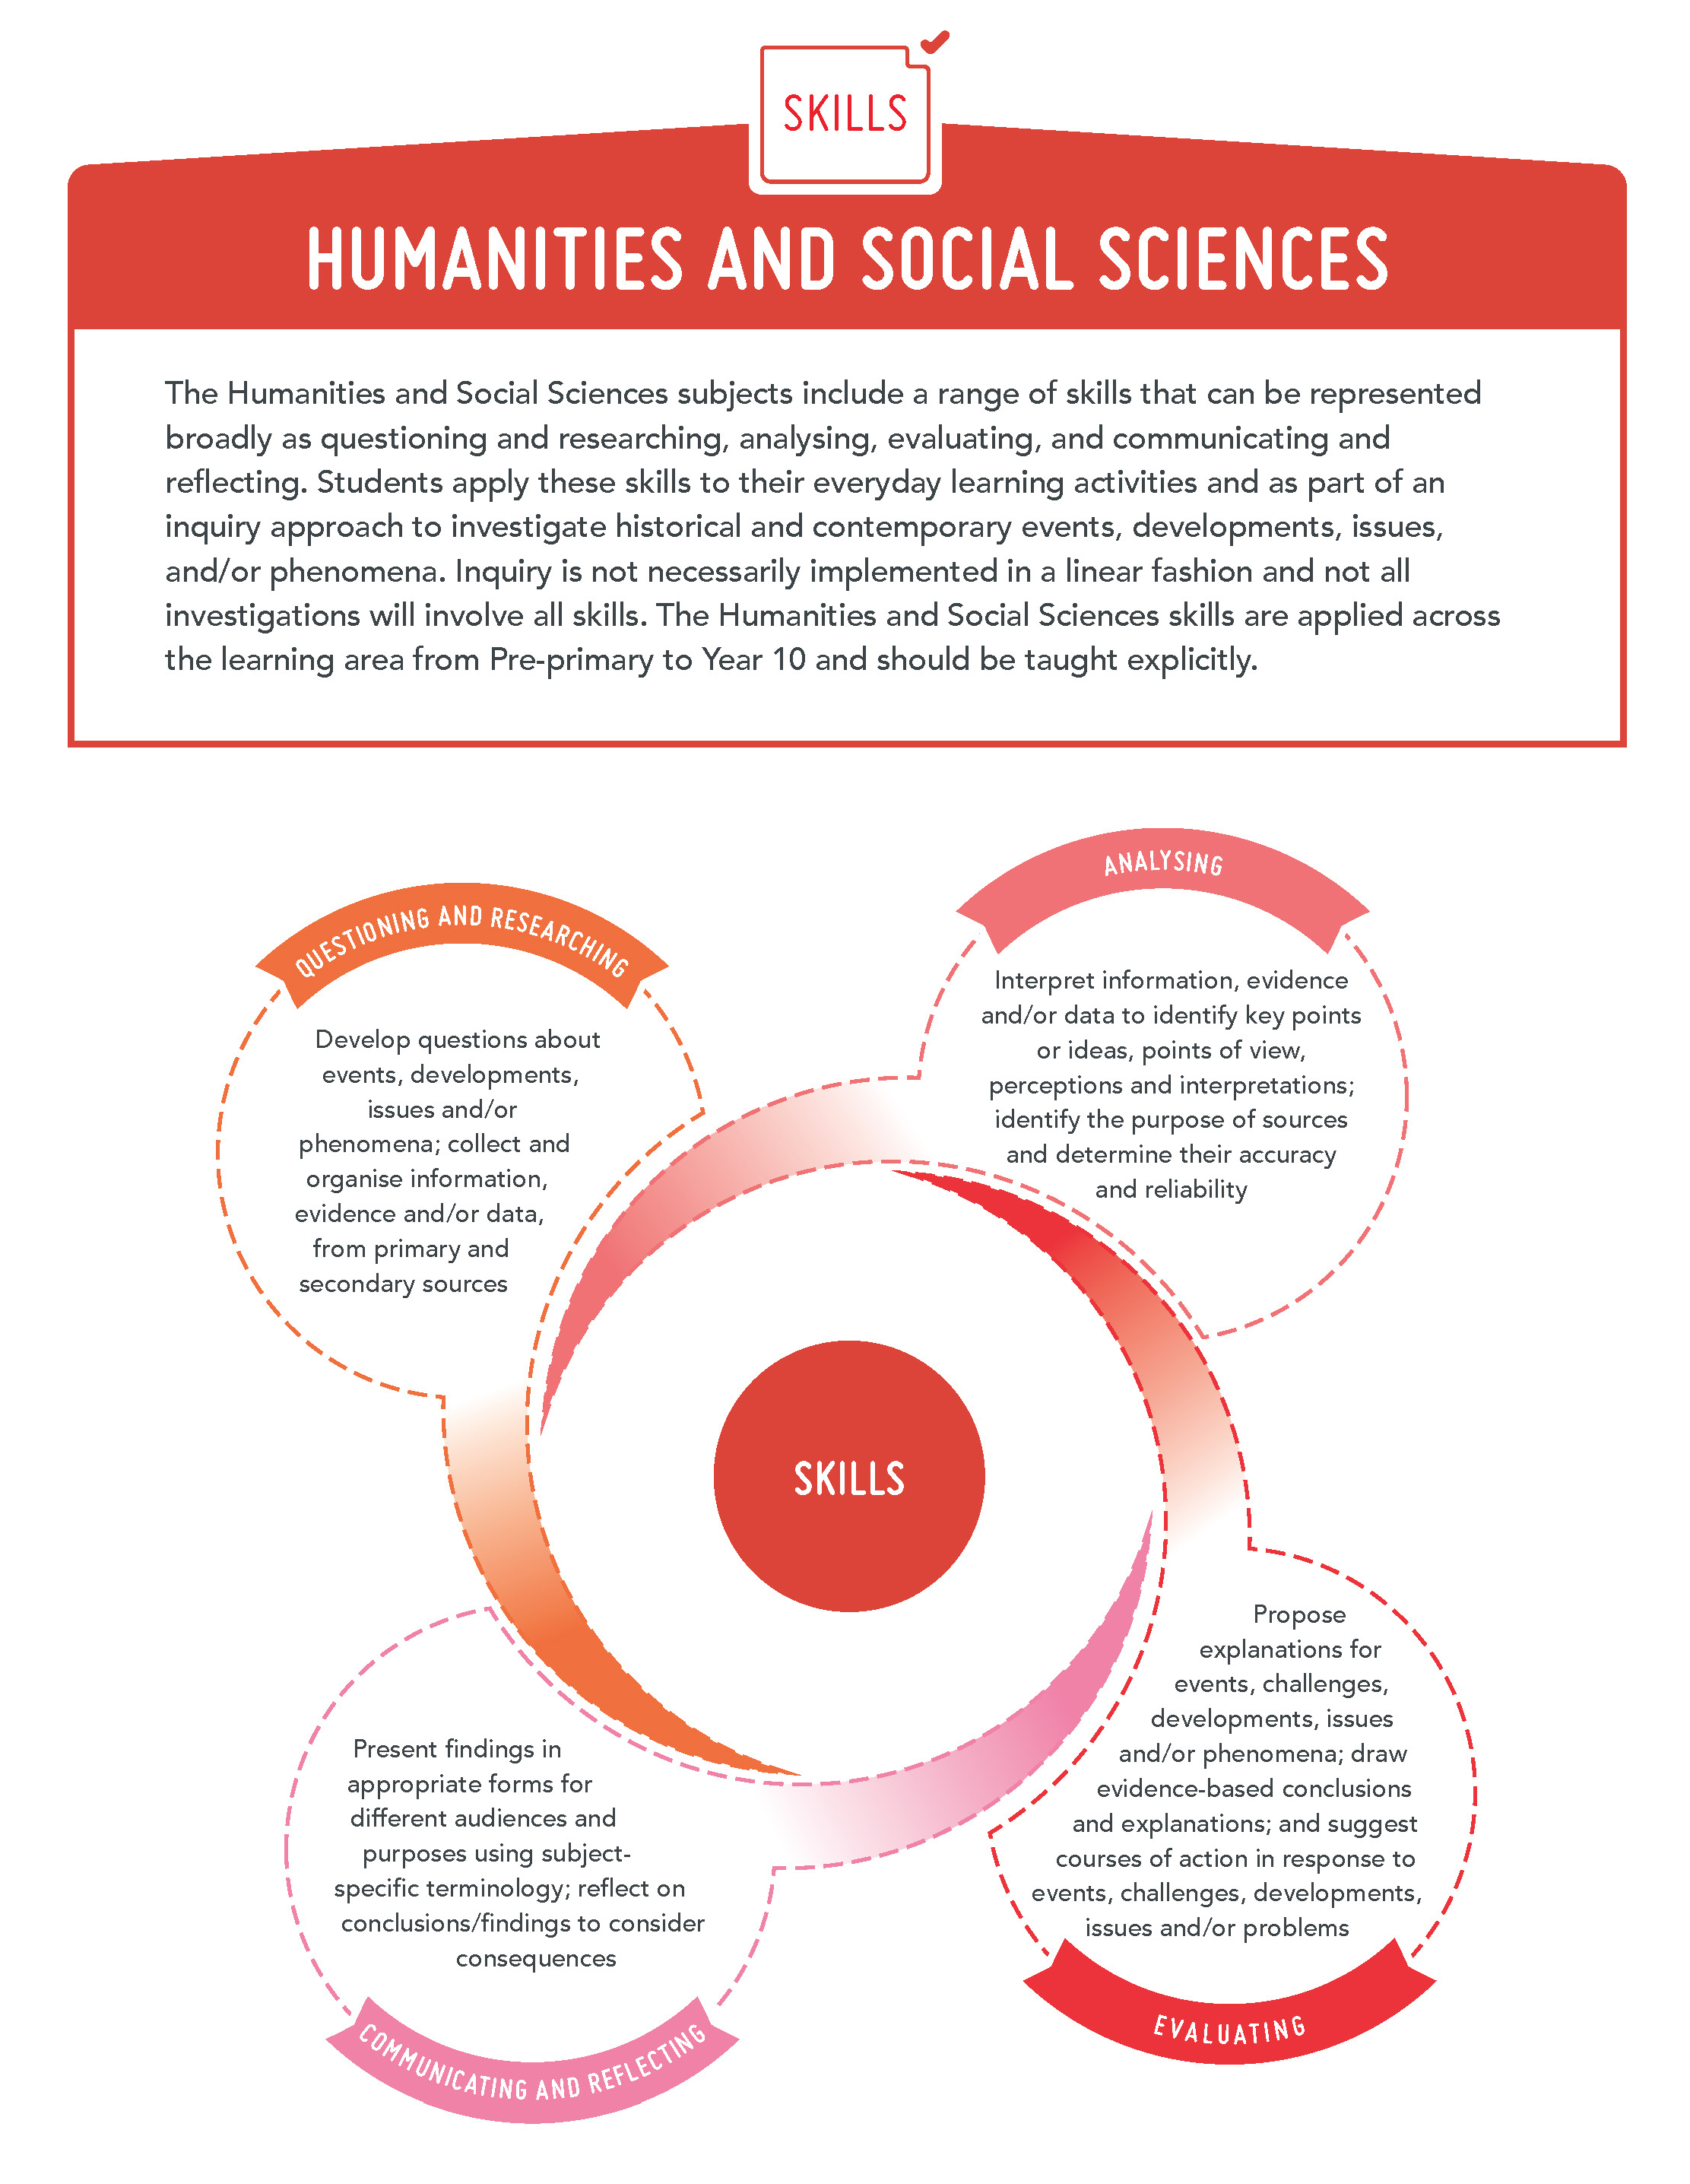 Humanities and Social Sciences - Skills